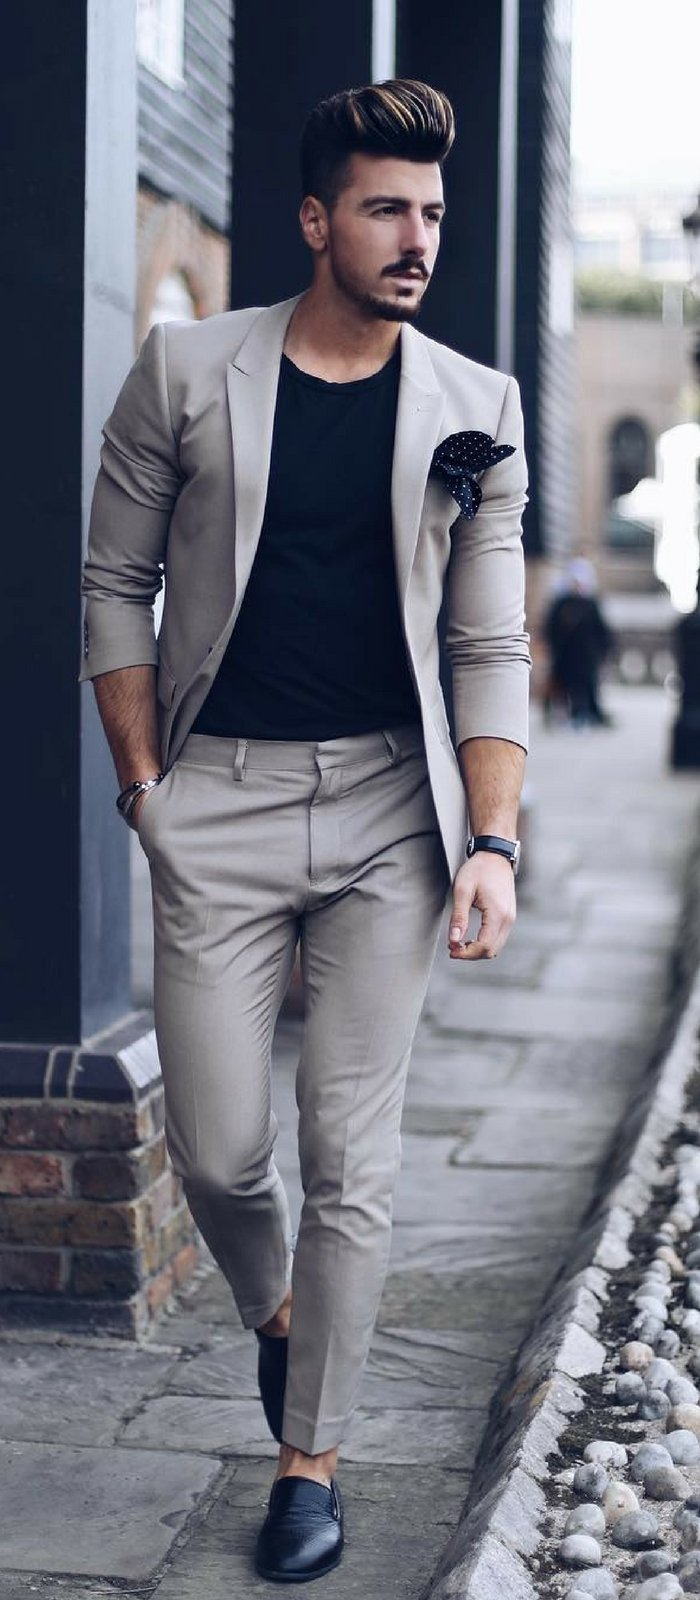 Cool casual outfits for guys.jpg